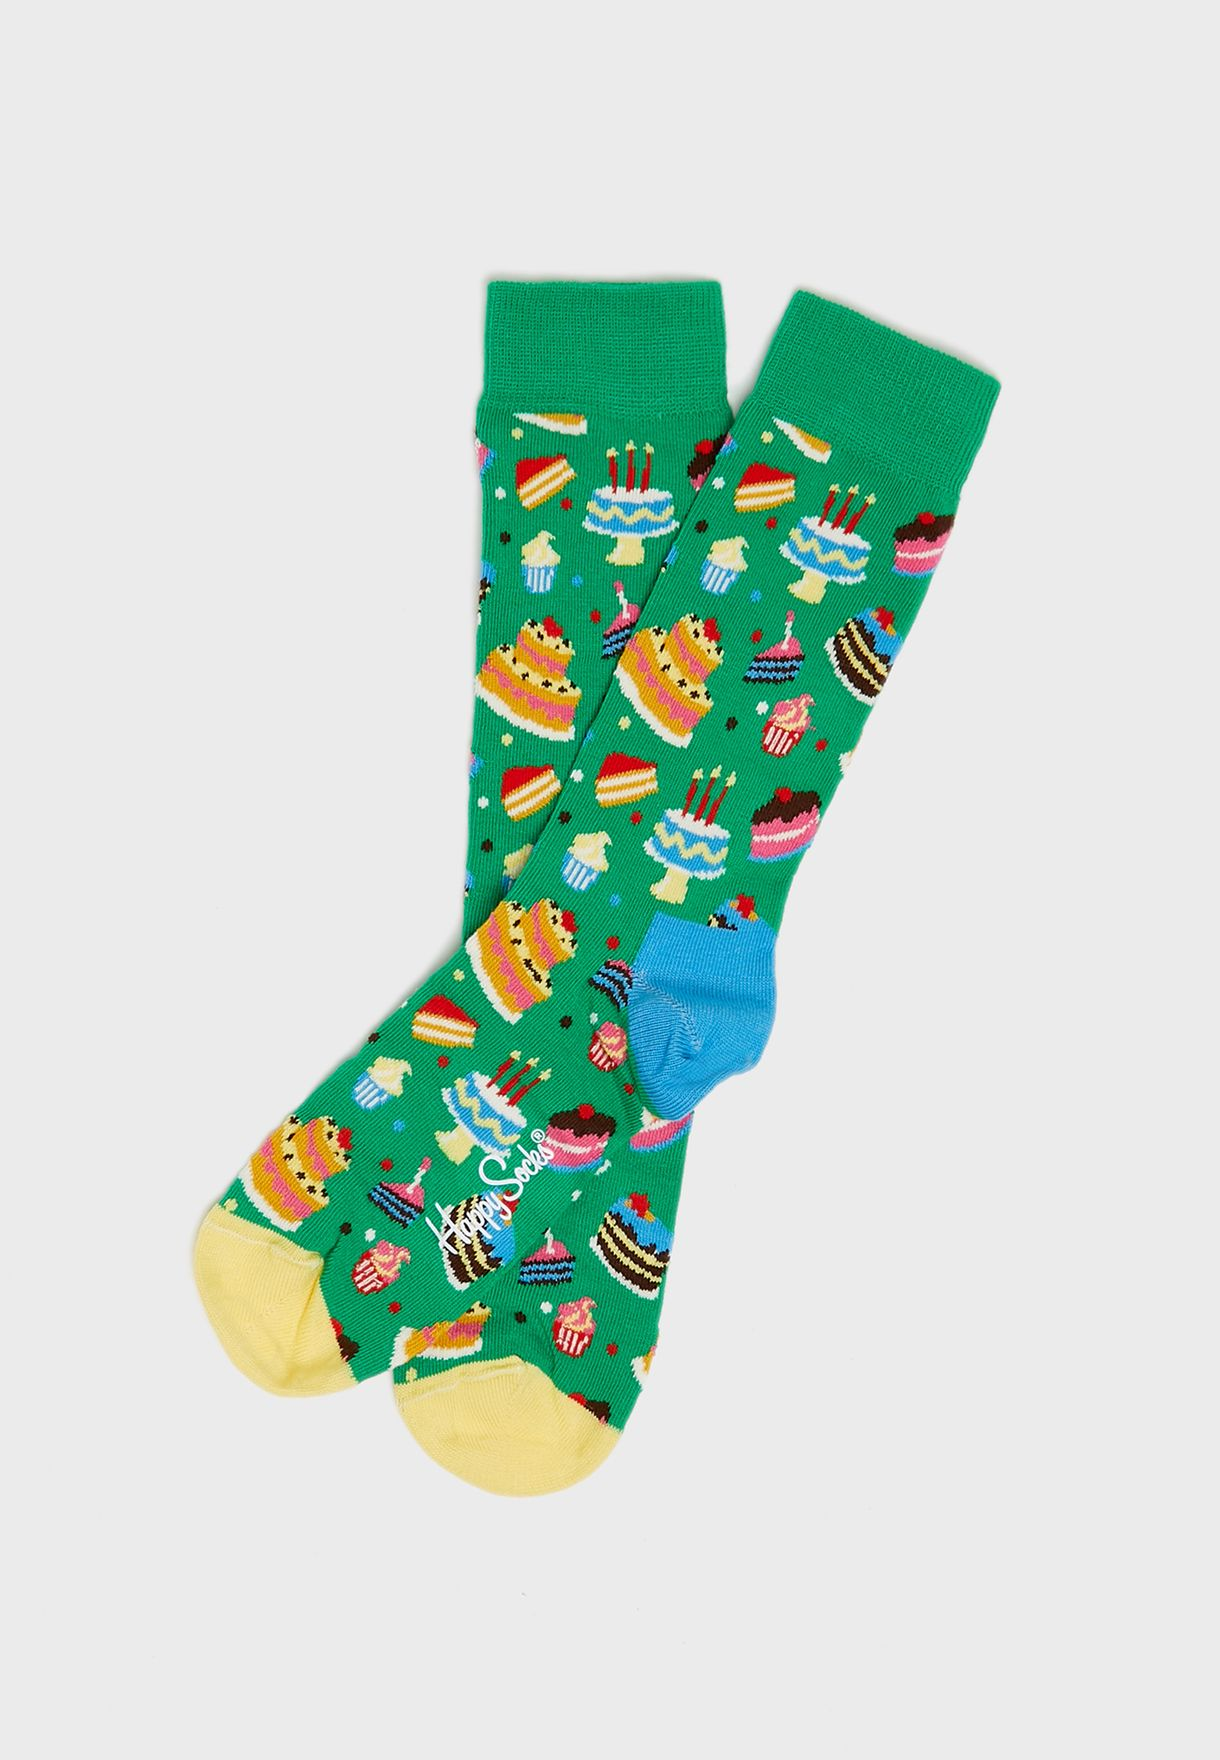 3 Pack Birthday Crew Socks